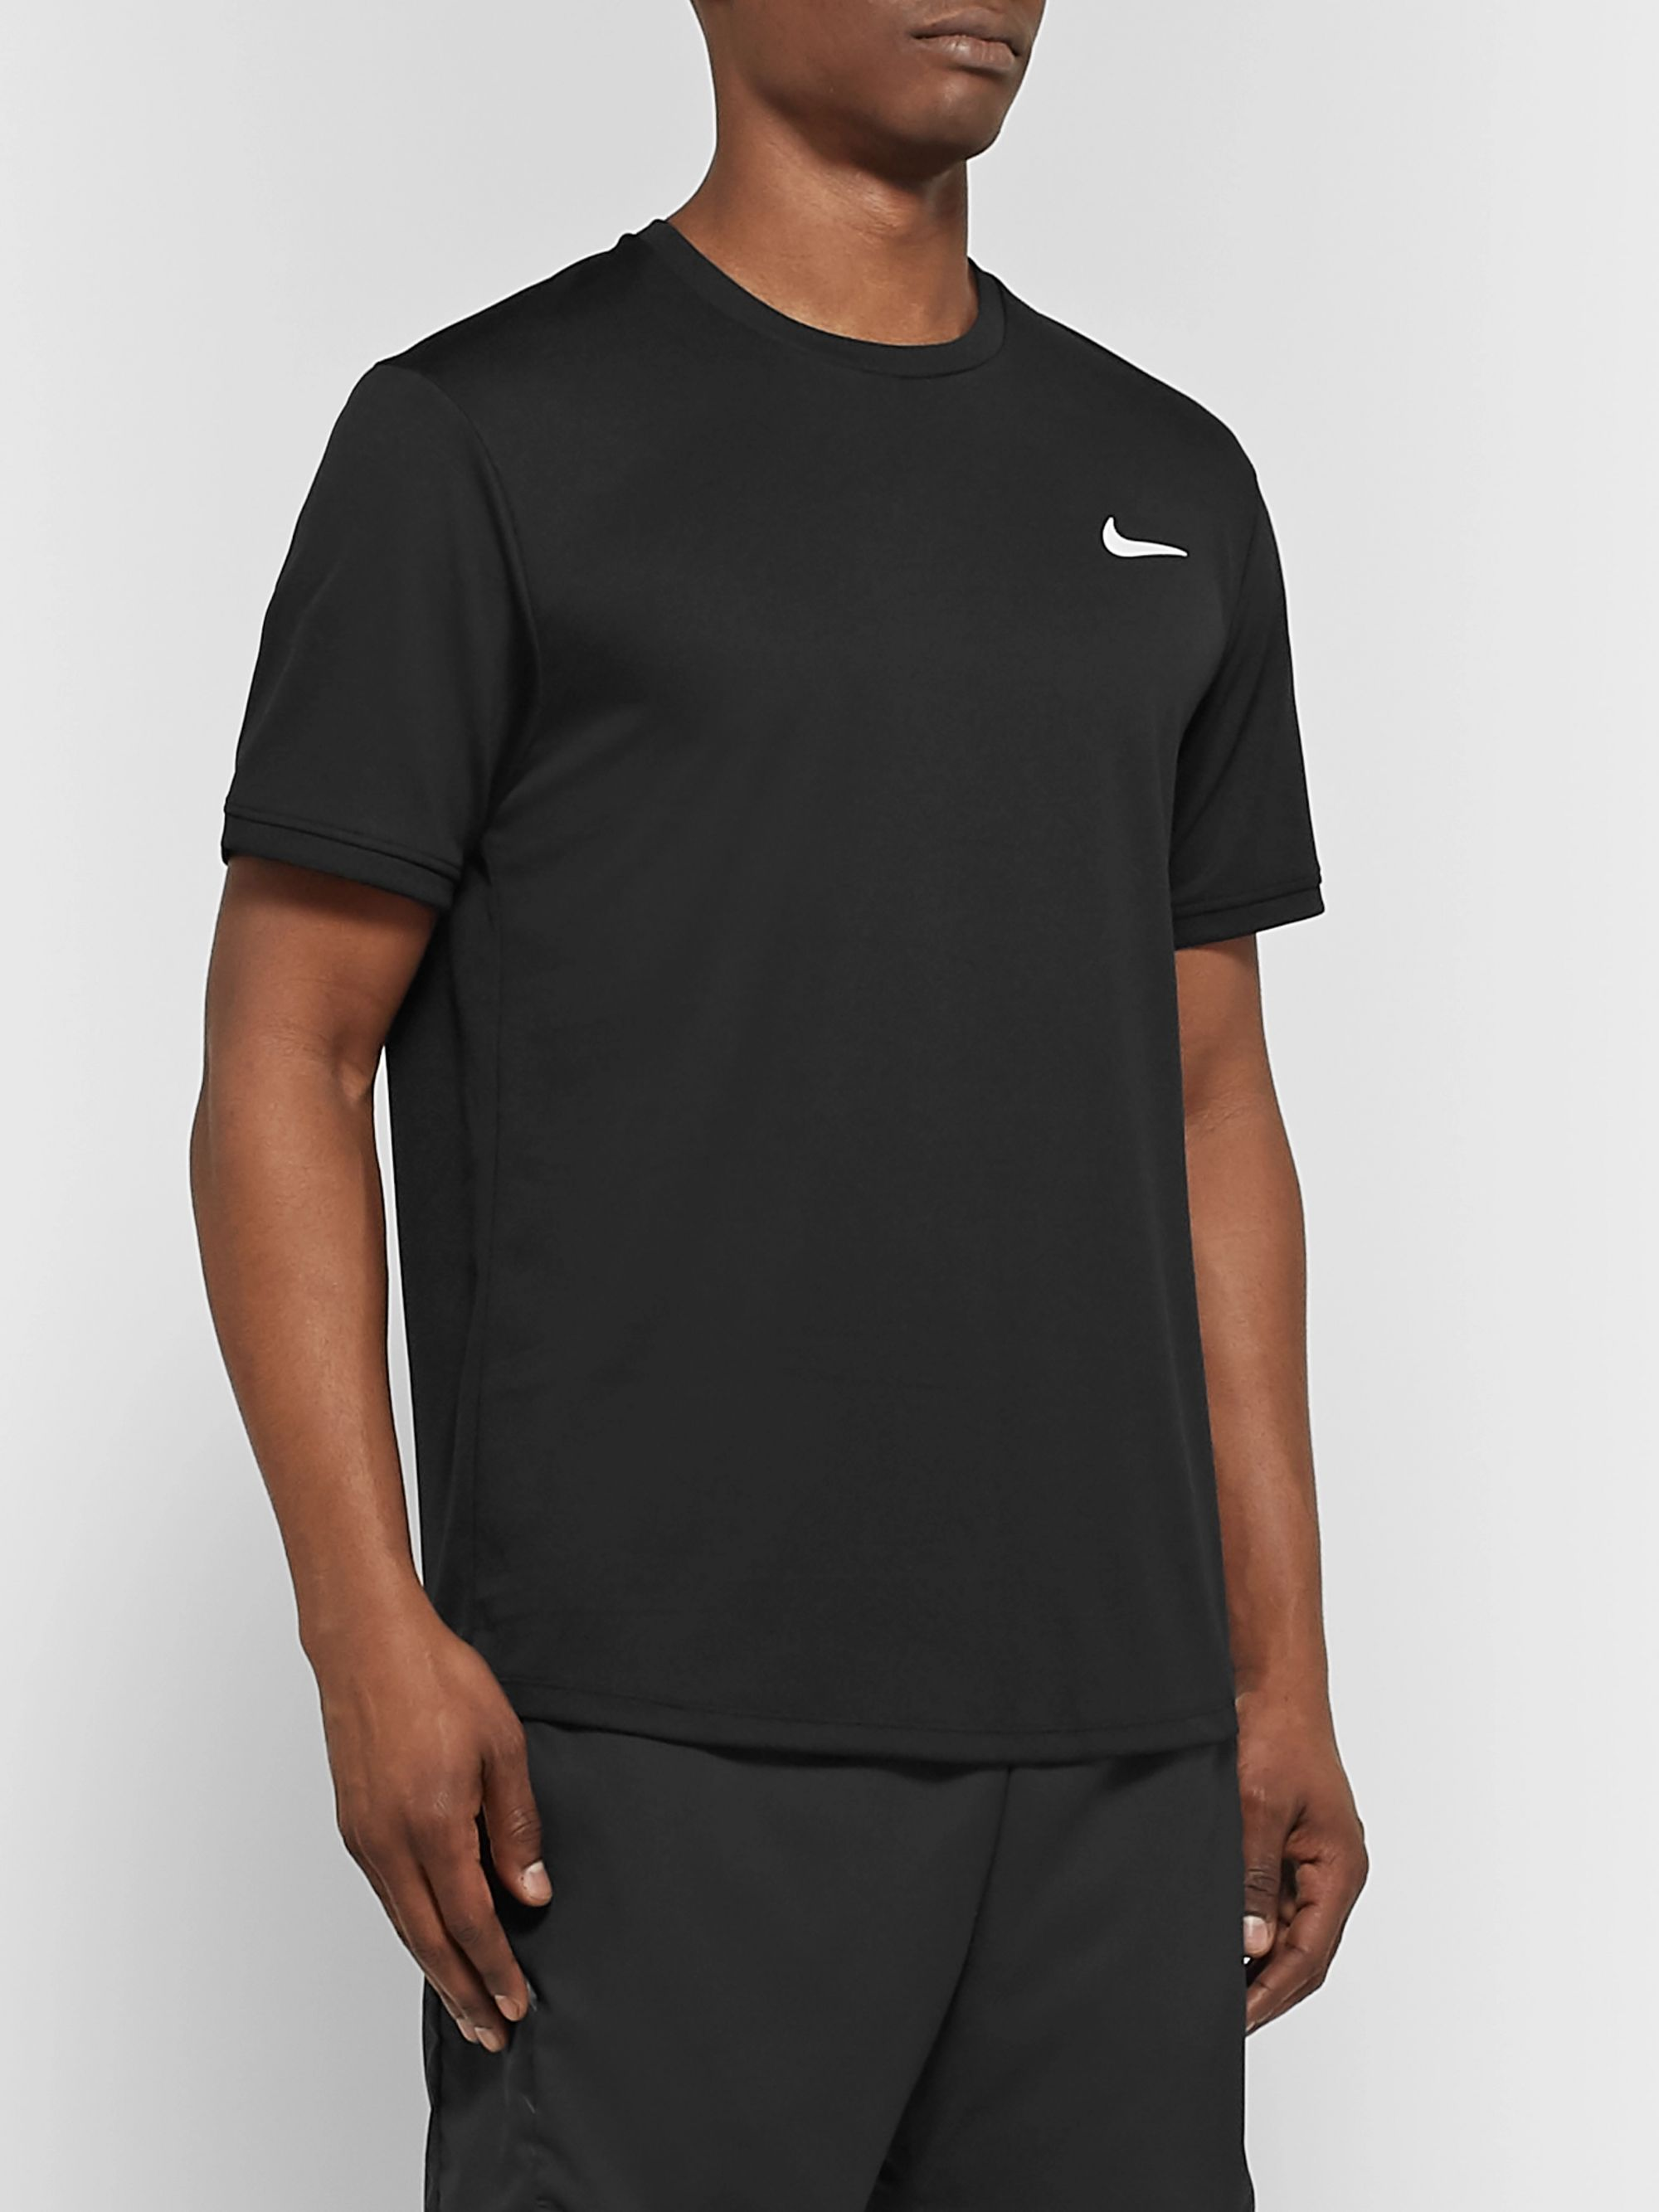 Nike Tennis NikeCourt Dri-FIT Tennis T-Shirt